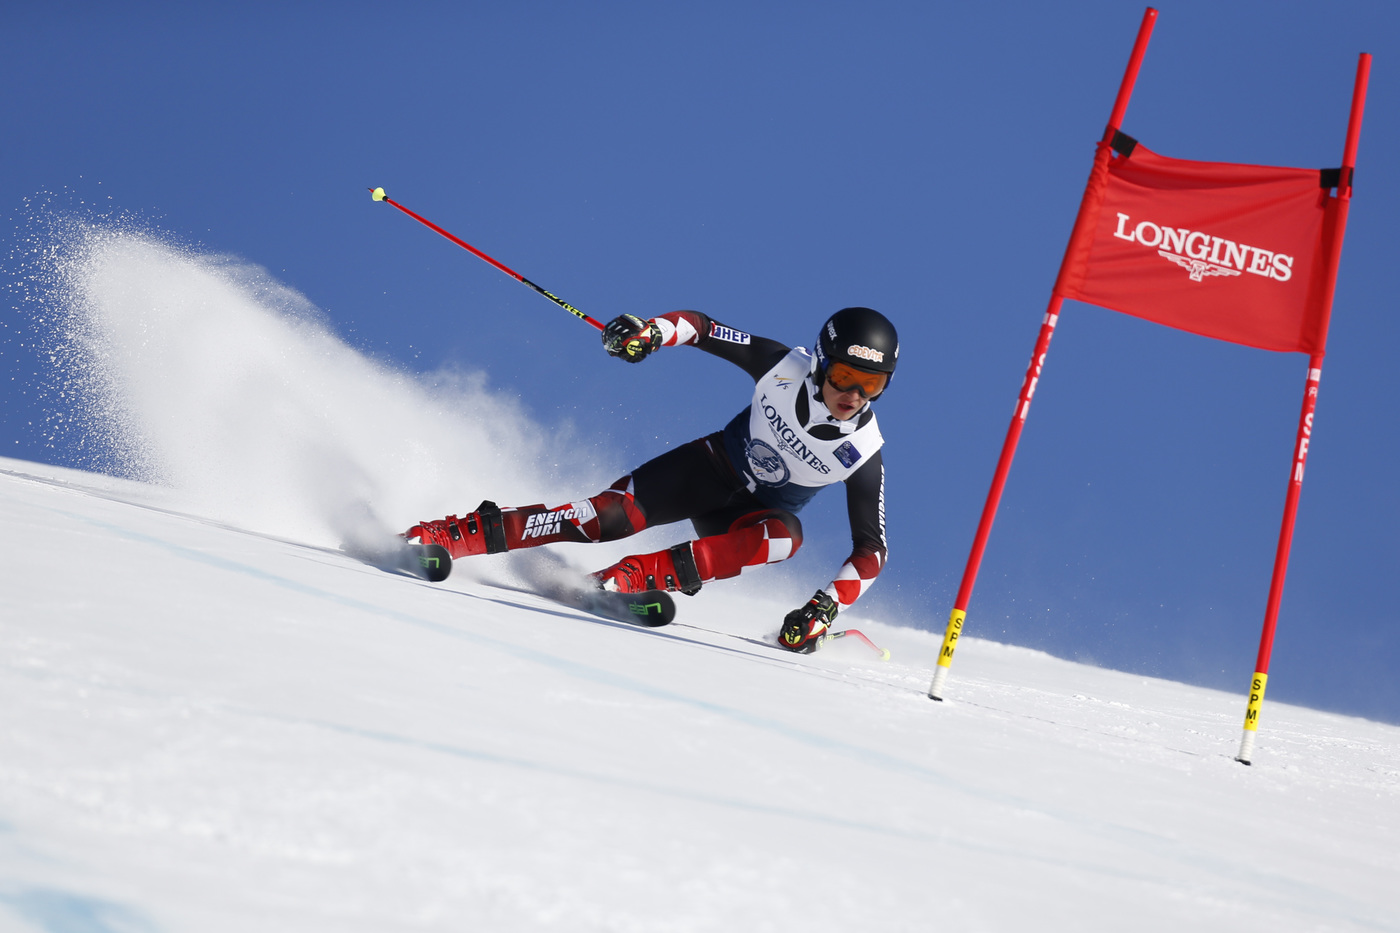 Longines Alpine Skiing Event: Longines Future Ski Champions : The best international young skiers faced off during the FIS Alpine World Cup Finals   11